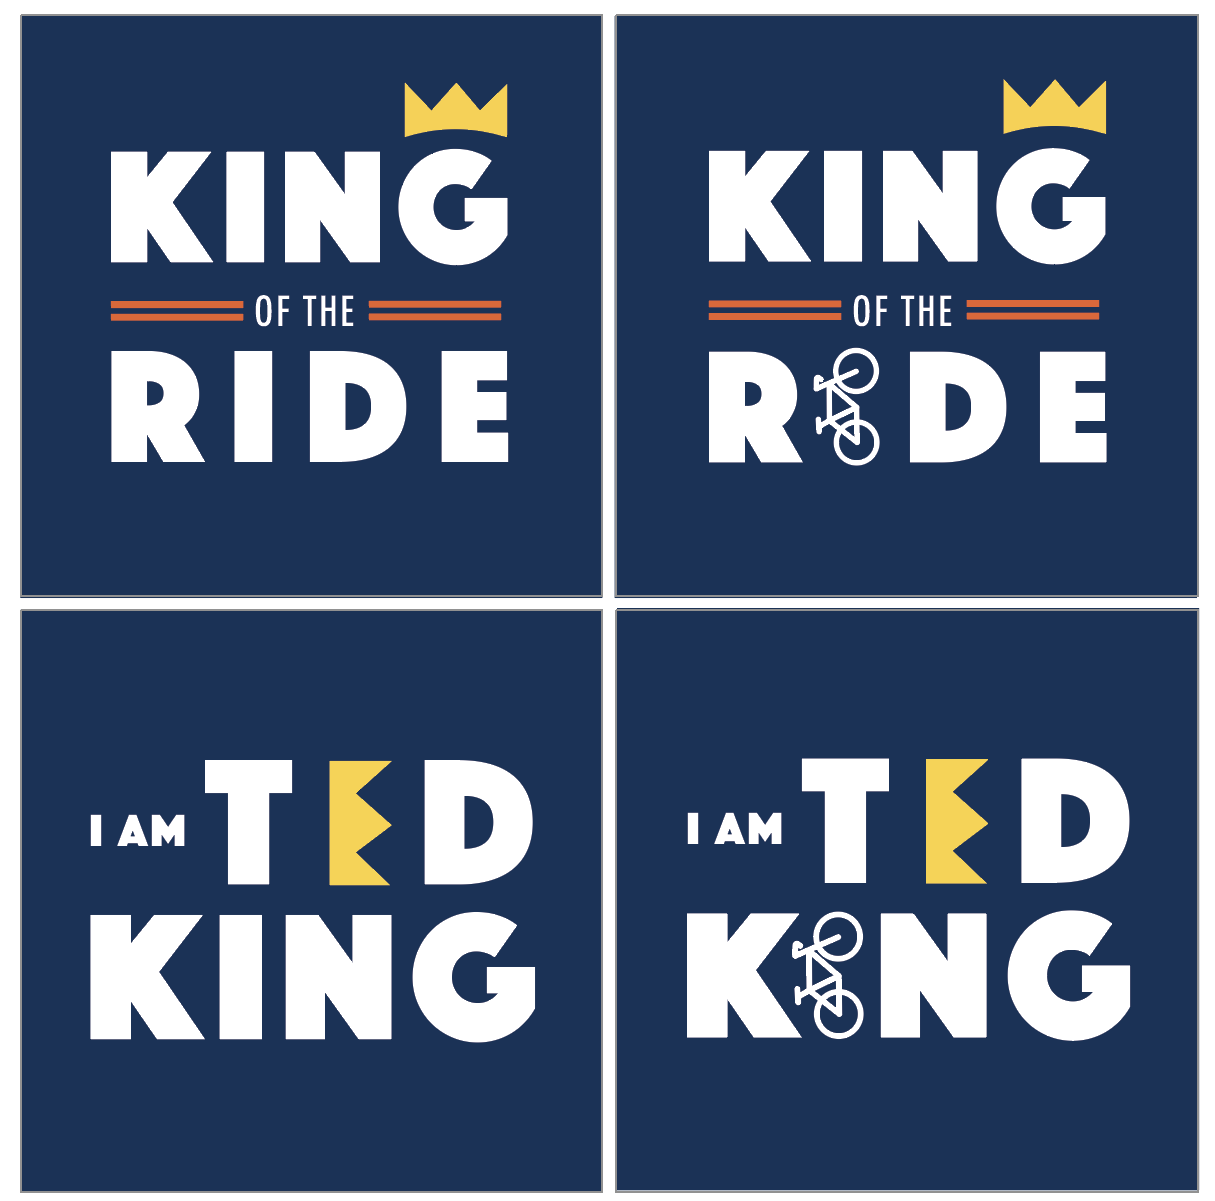 My client decided on these 4 designs as the  final products.  each of the elements (the crown and the bike) can be used as standalone elements in maintaining their personal brand.